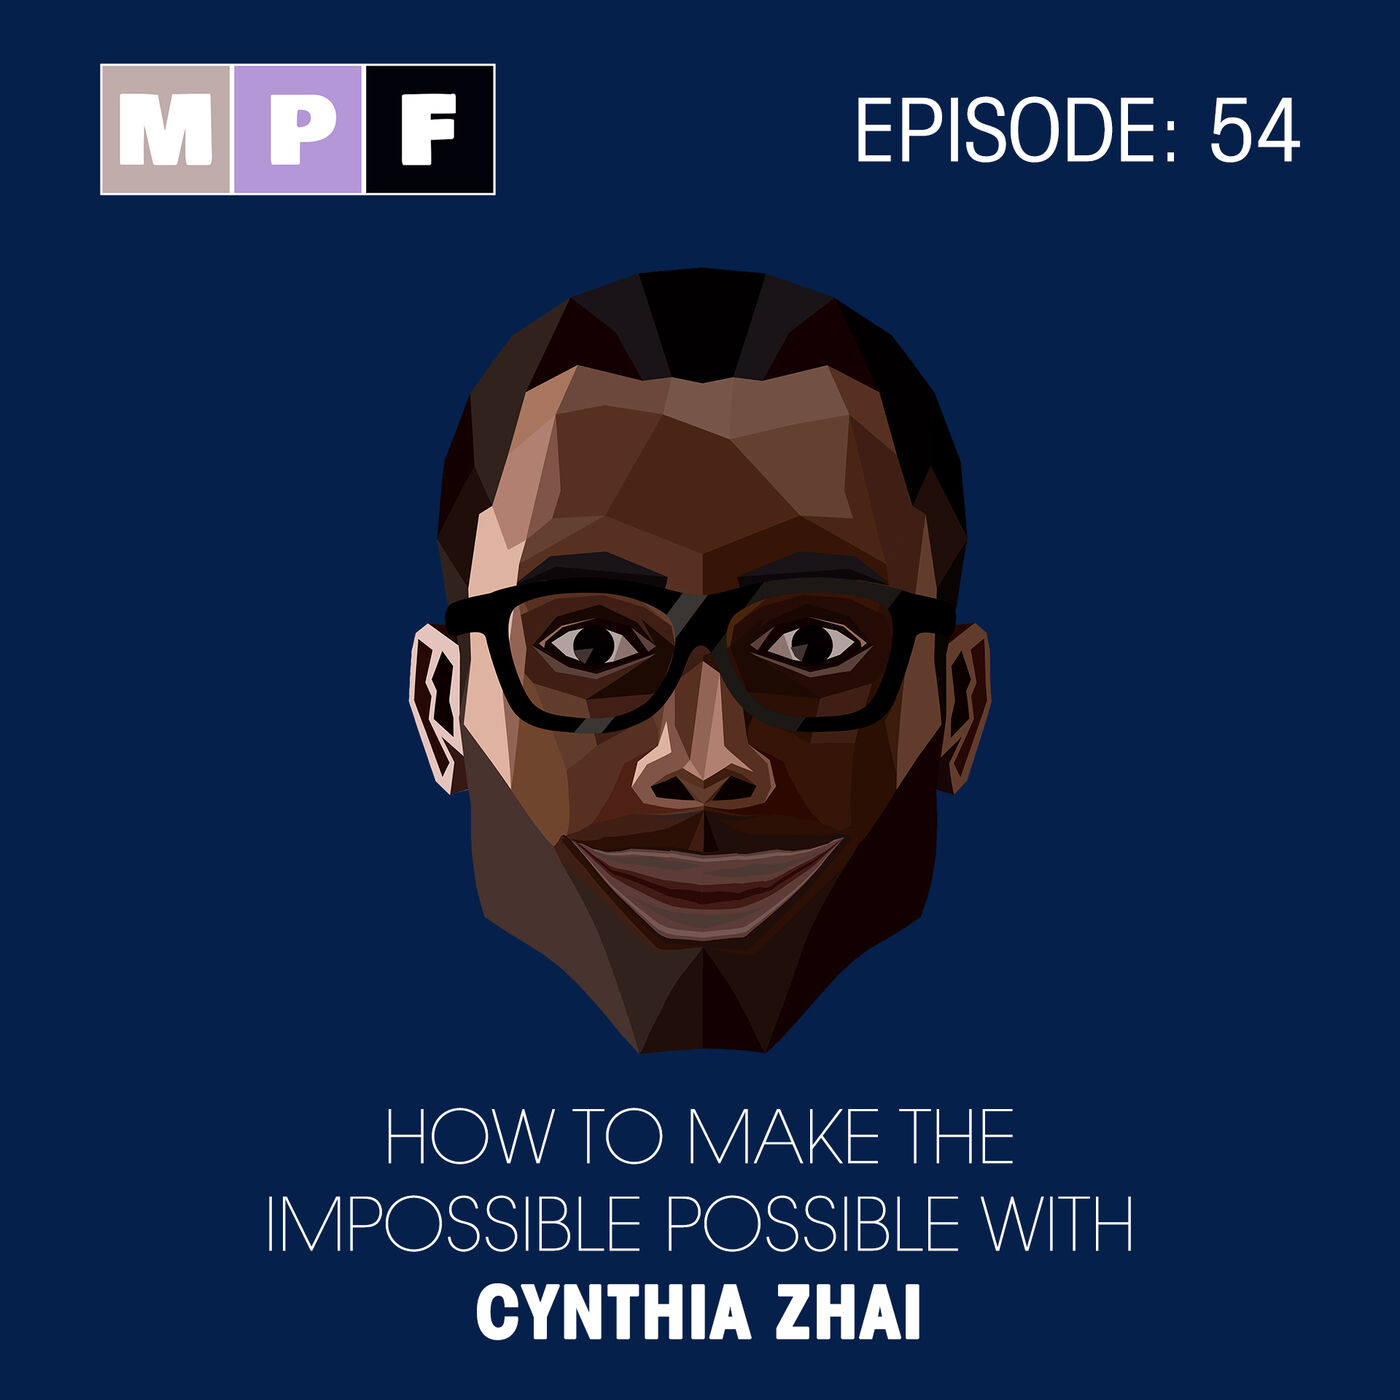 How to make the Impossible Possible with Cynthia Zhai